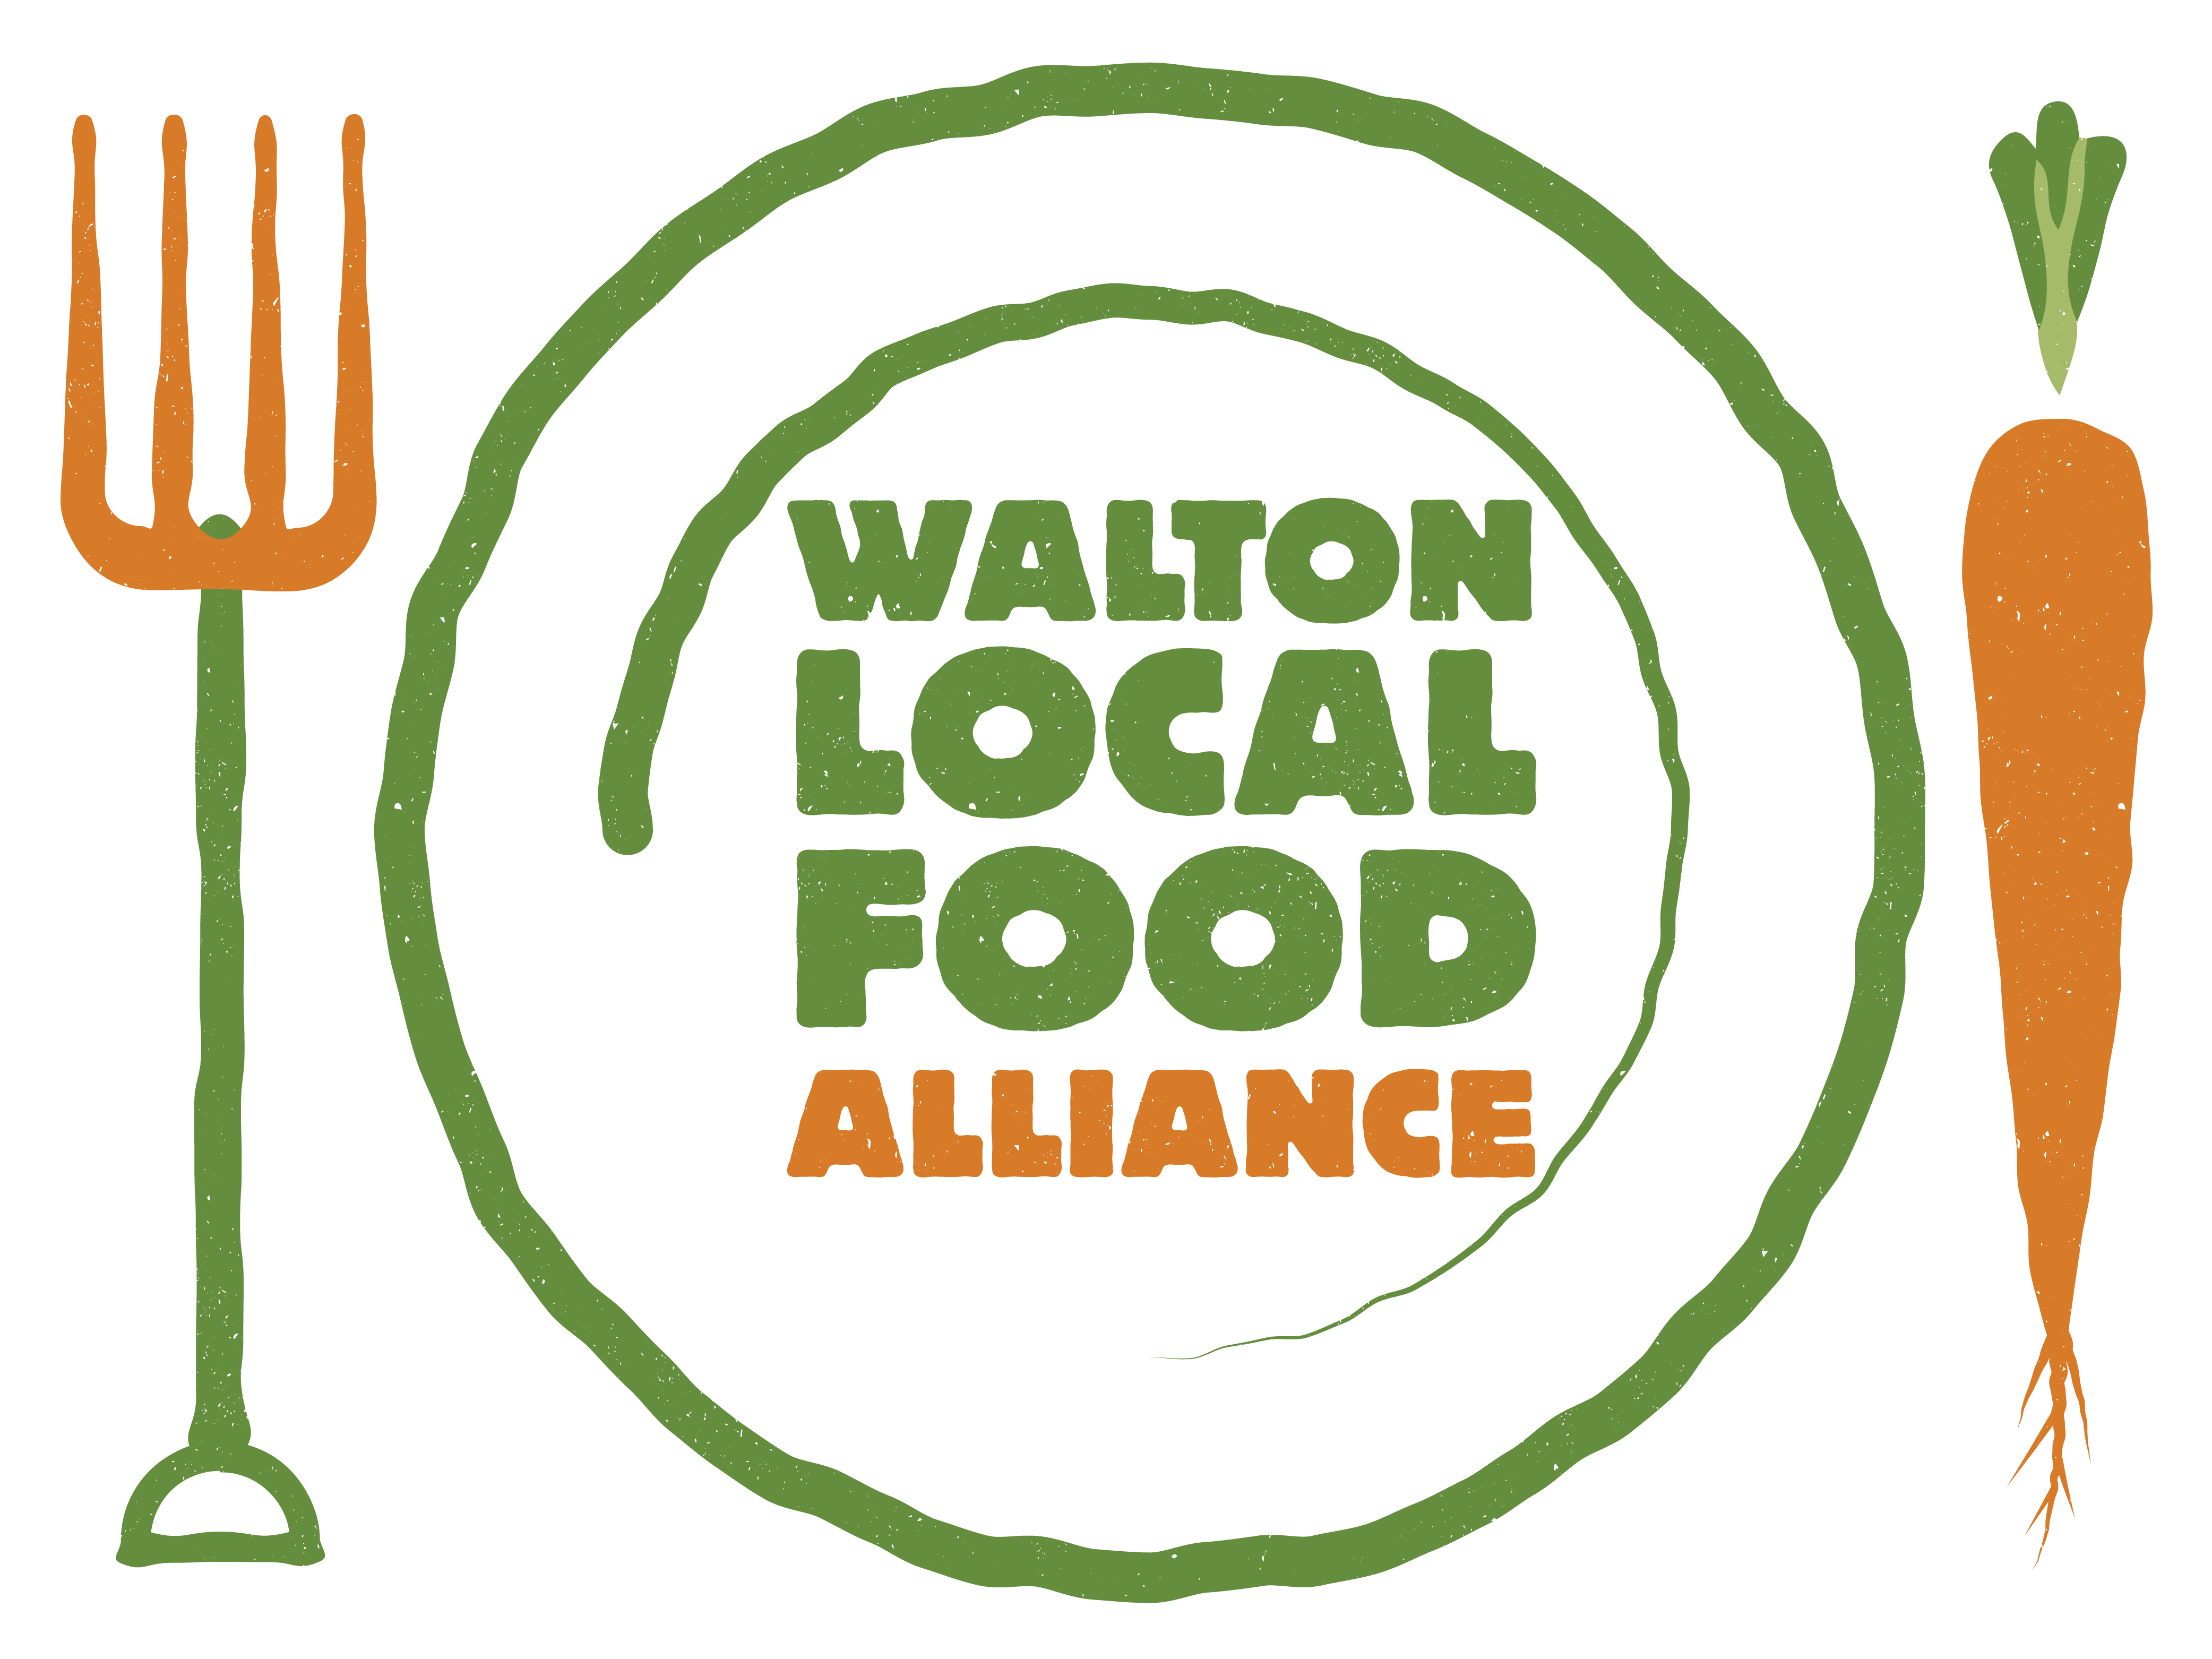 Walton Local Food Alliance